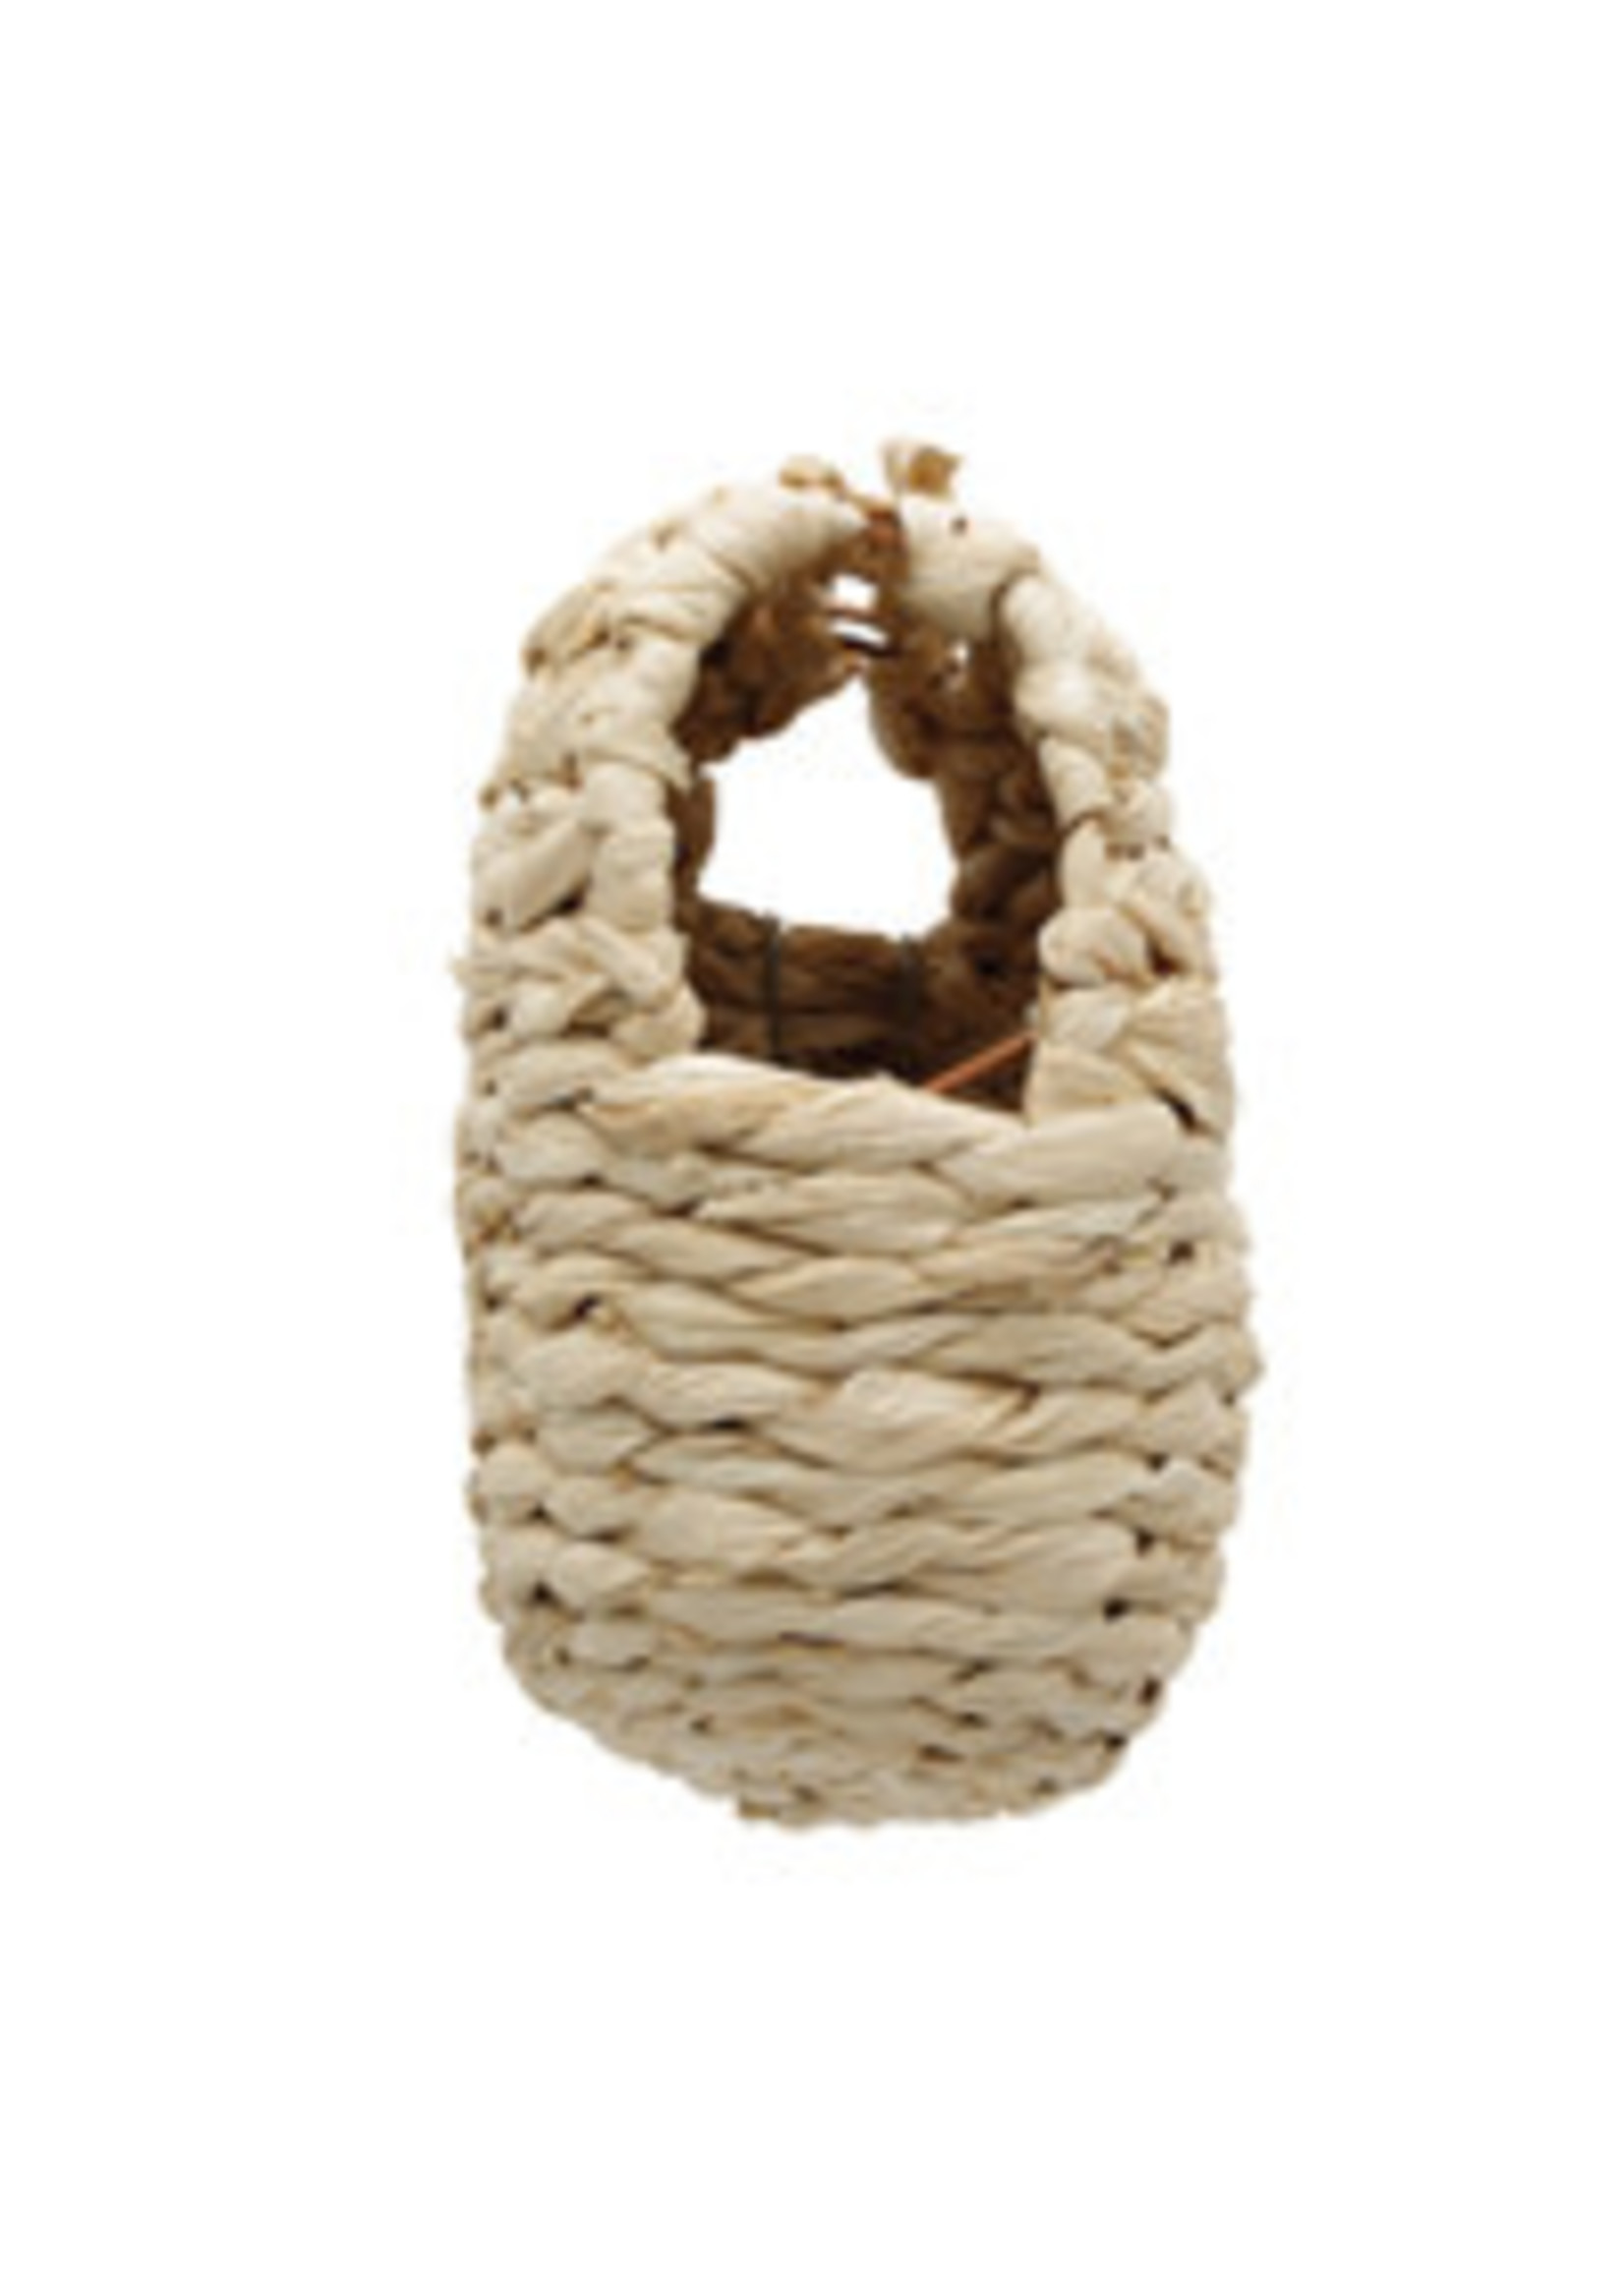 Hagen Living World Maize Peel Bird Nest for Finches - Large - 10.5 cm x 13 cm x 15 cm (4.1in x 5.1in x 5.9in in) 82014